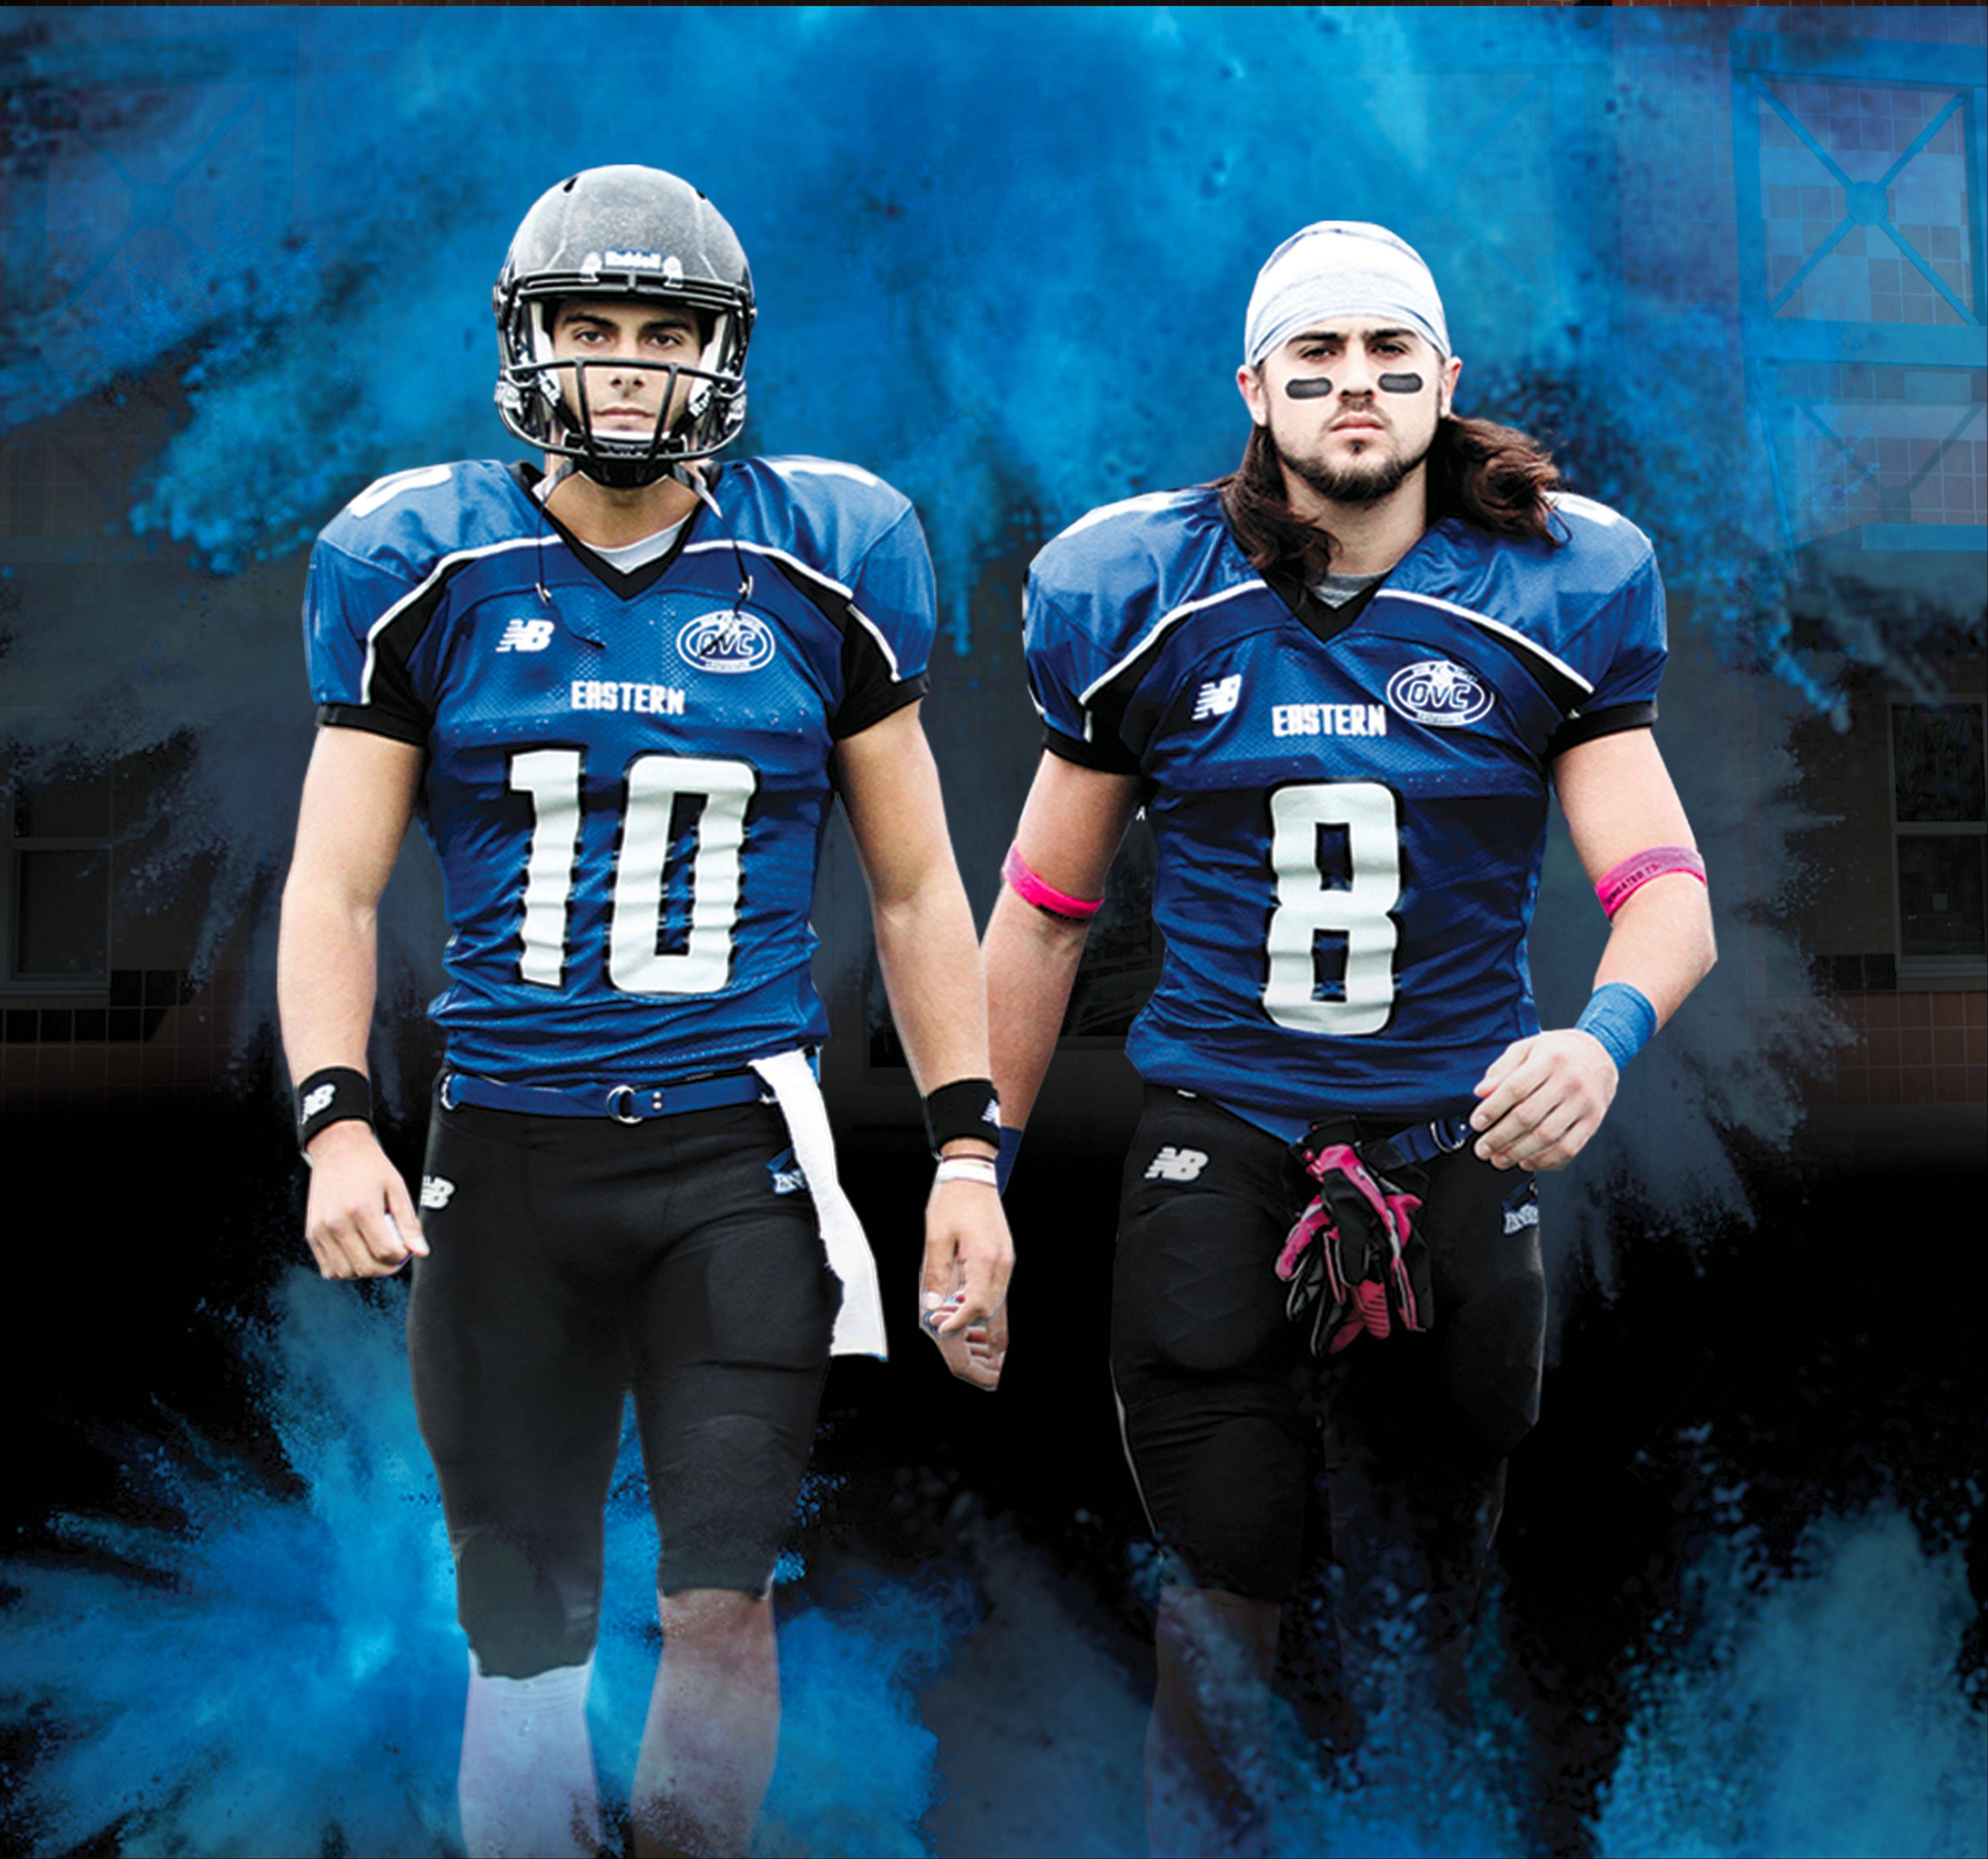 Eastern Illinois quarterback Jimmy Garoppolo of Rolling Meadows and wide receiver Erik Lora of Miami are creating problems for defenses this season. Garoppolo has thrown for 14 touchdowns in three games, and Lora has 31 receptions and 6 TDs as well.